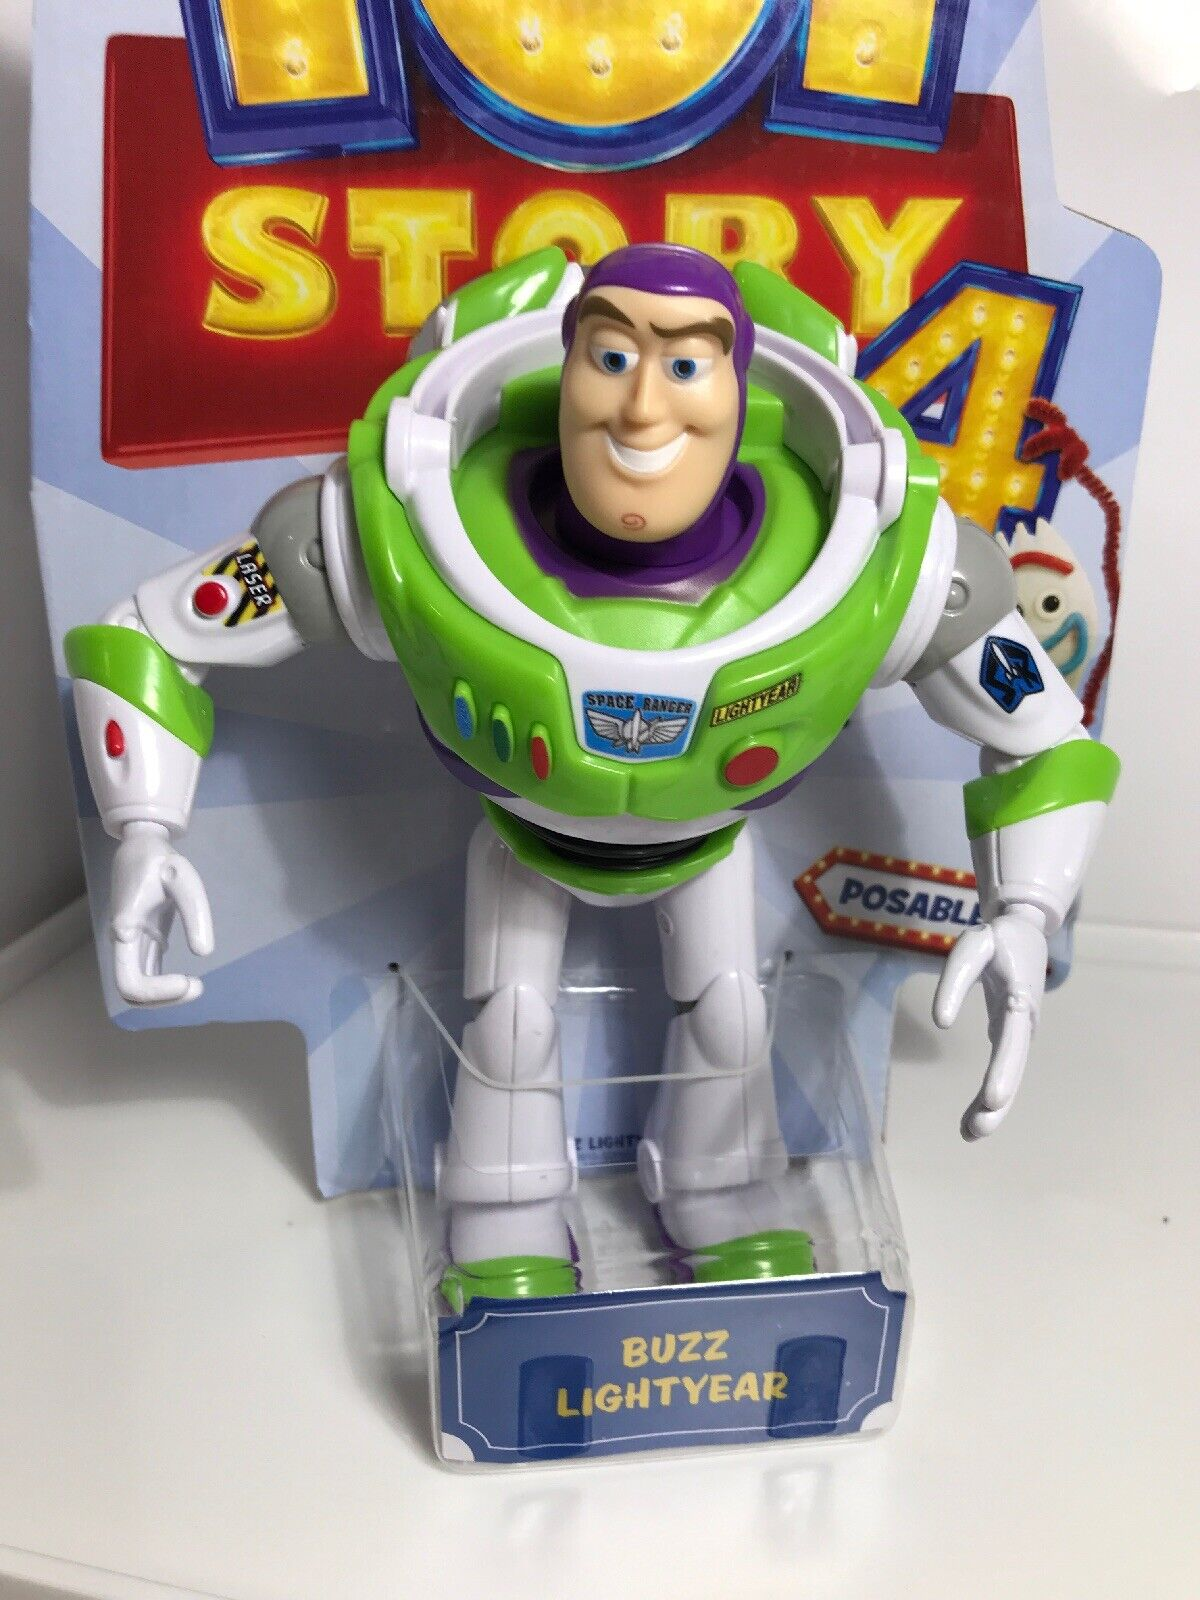 Neu Mattel Toy Story 4 Basis Figur Buzz Lightyear 11313346